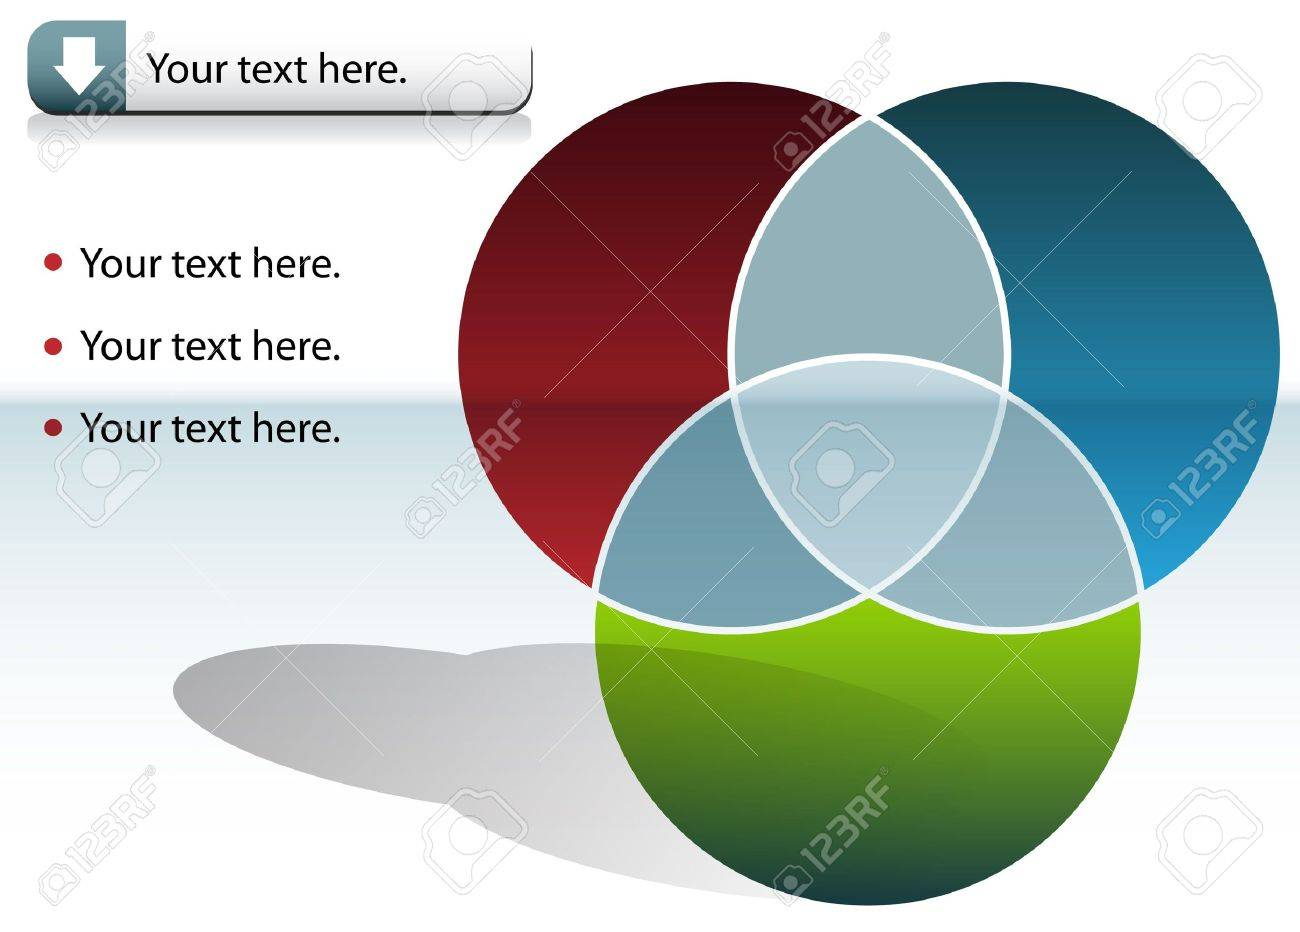 circle chart stock photo  picture and royalty free image  image    stock photo   circle chart